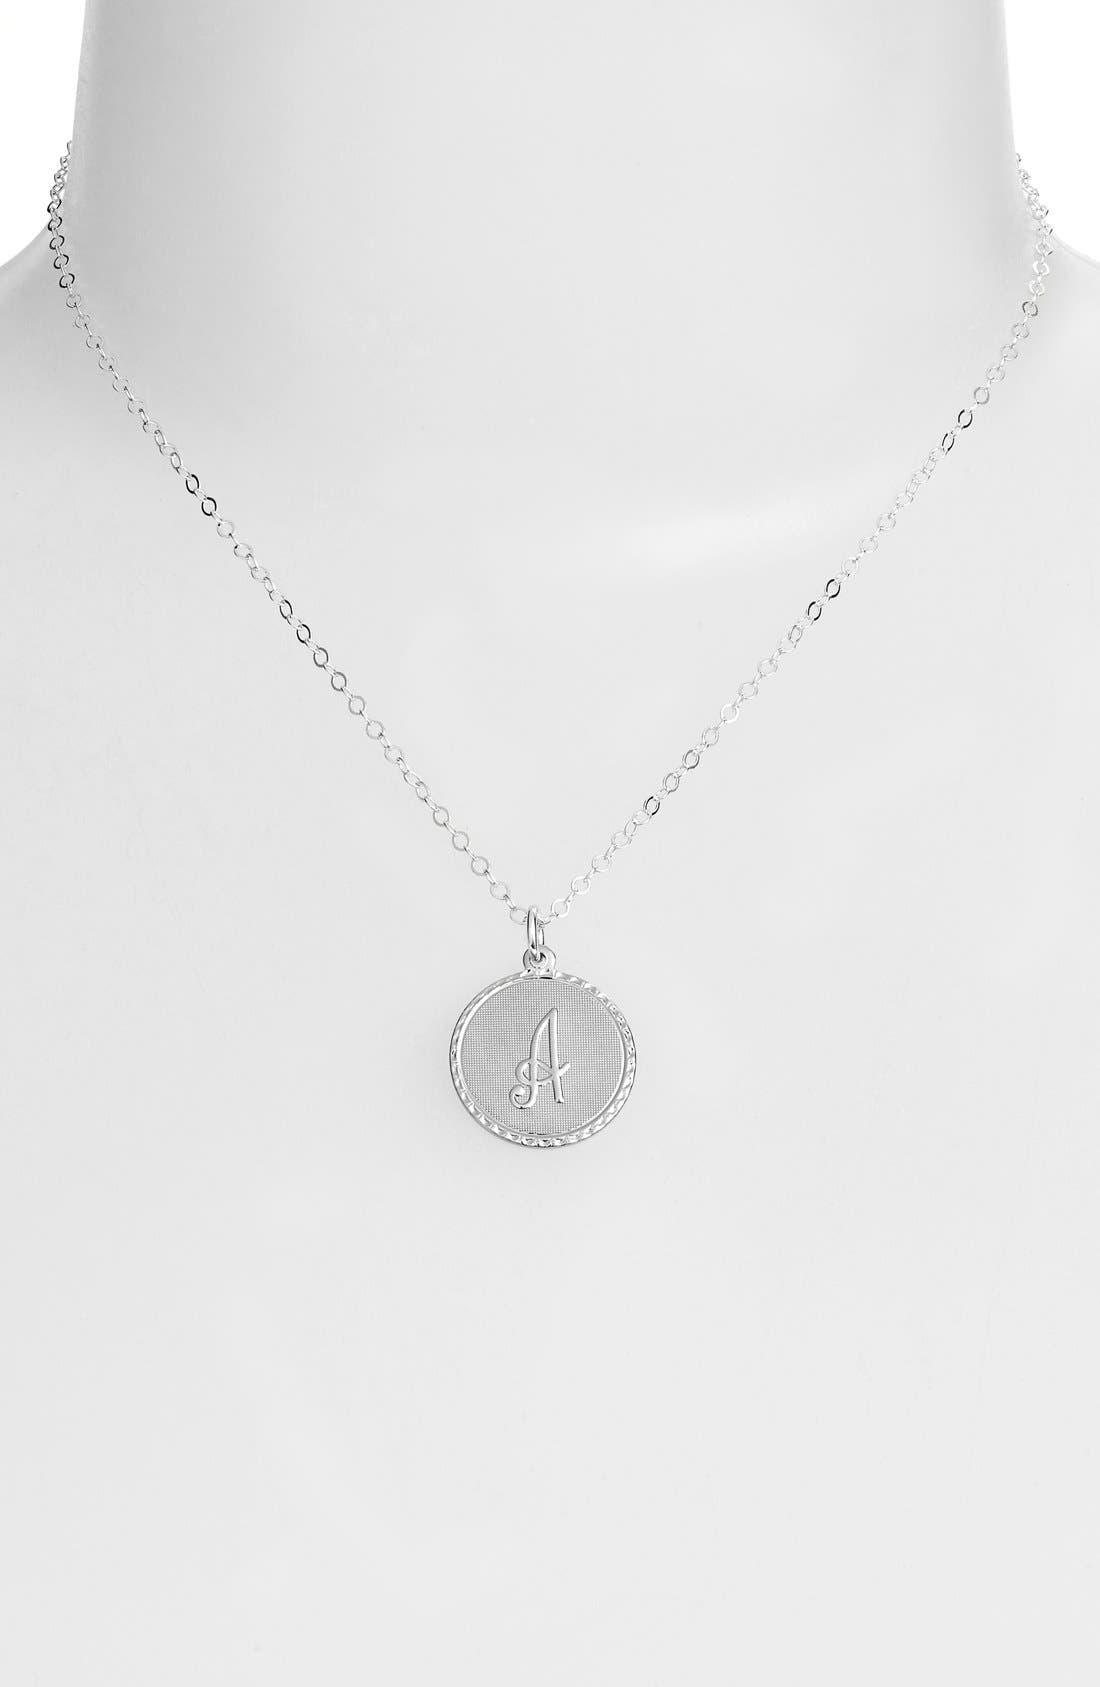 MOON AND LOLA,                             'Dalton' Initial Pendant Necklace,                             Alternate thumbnail 2, color,                             SILVER- A